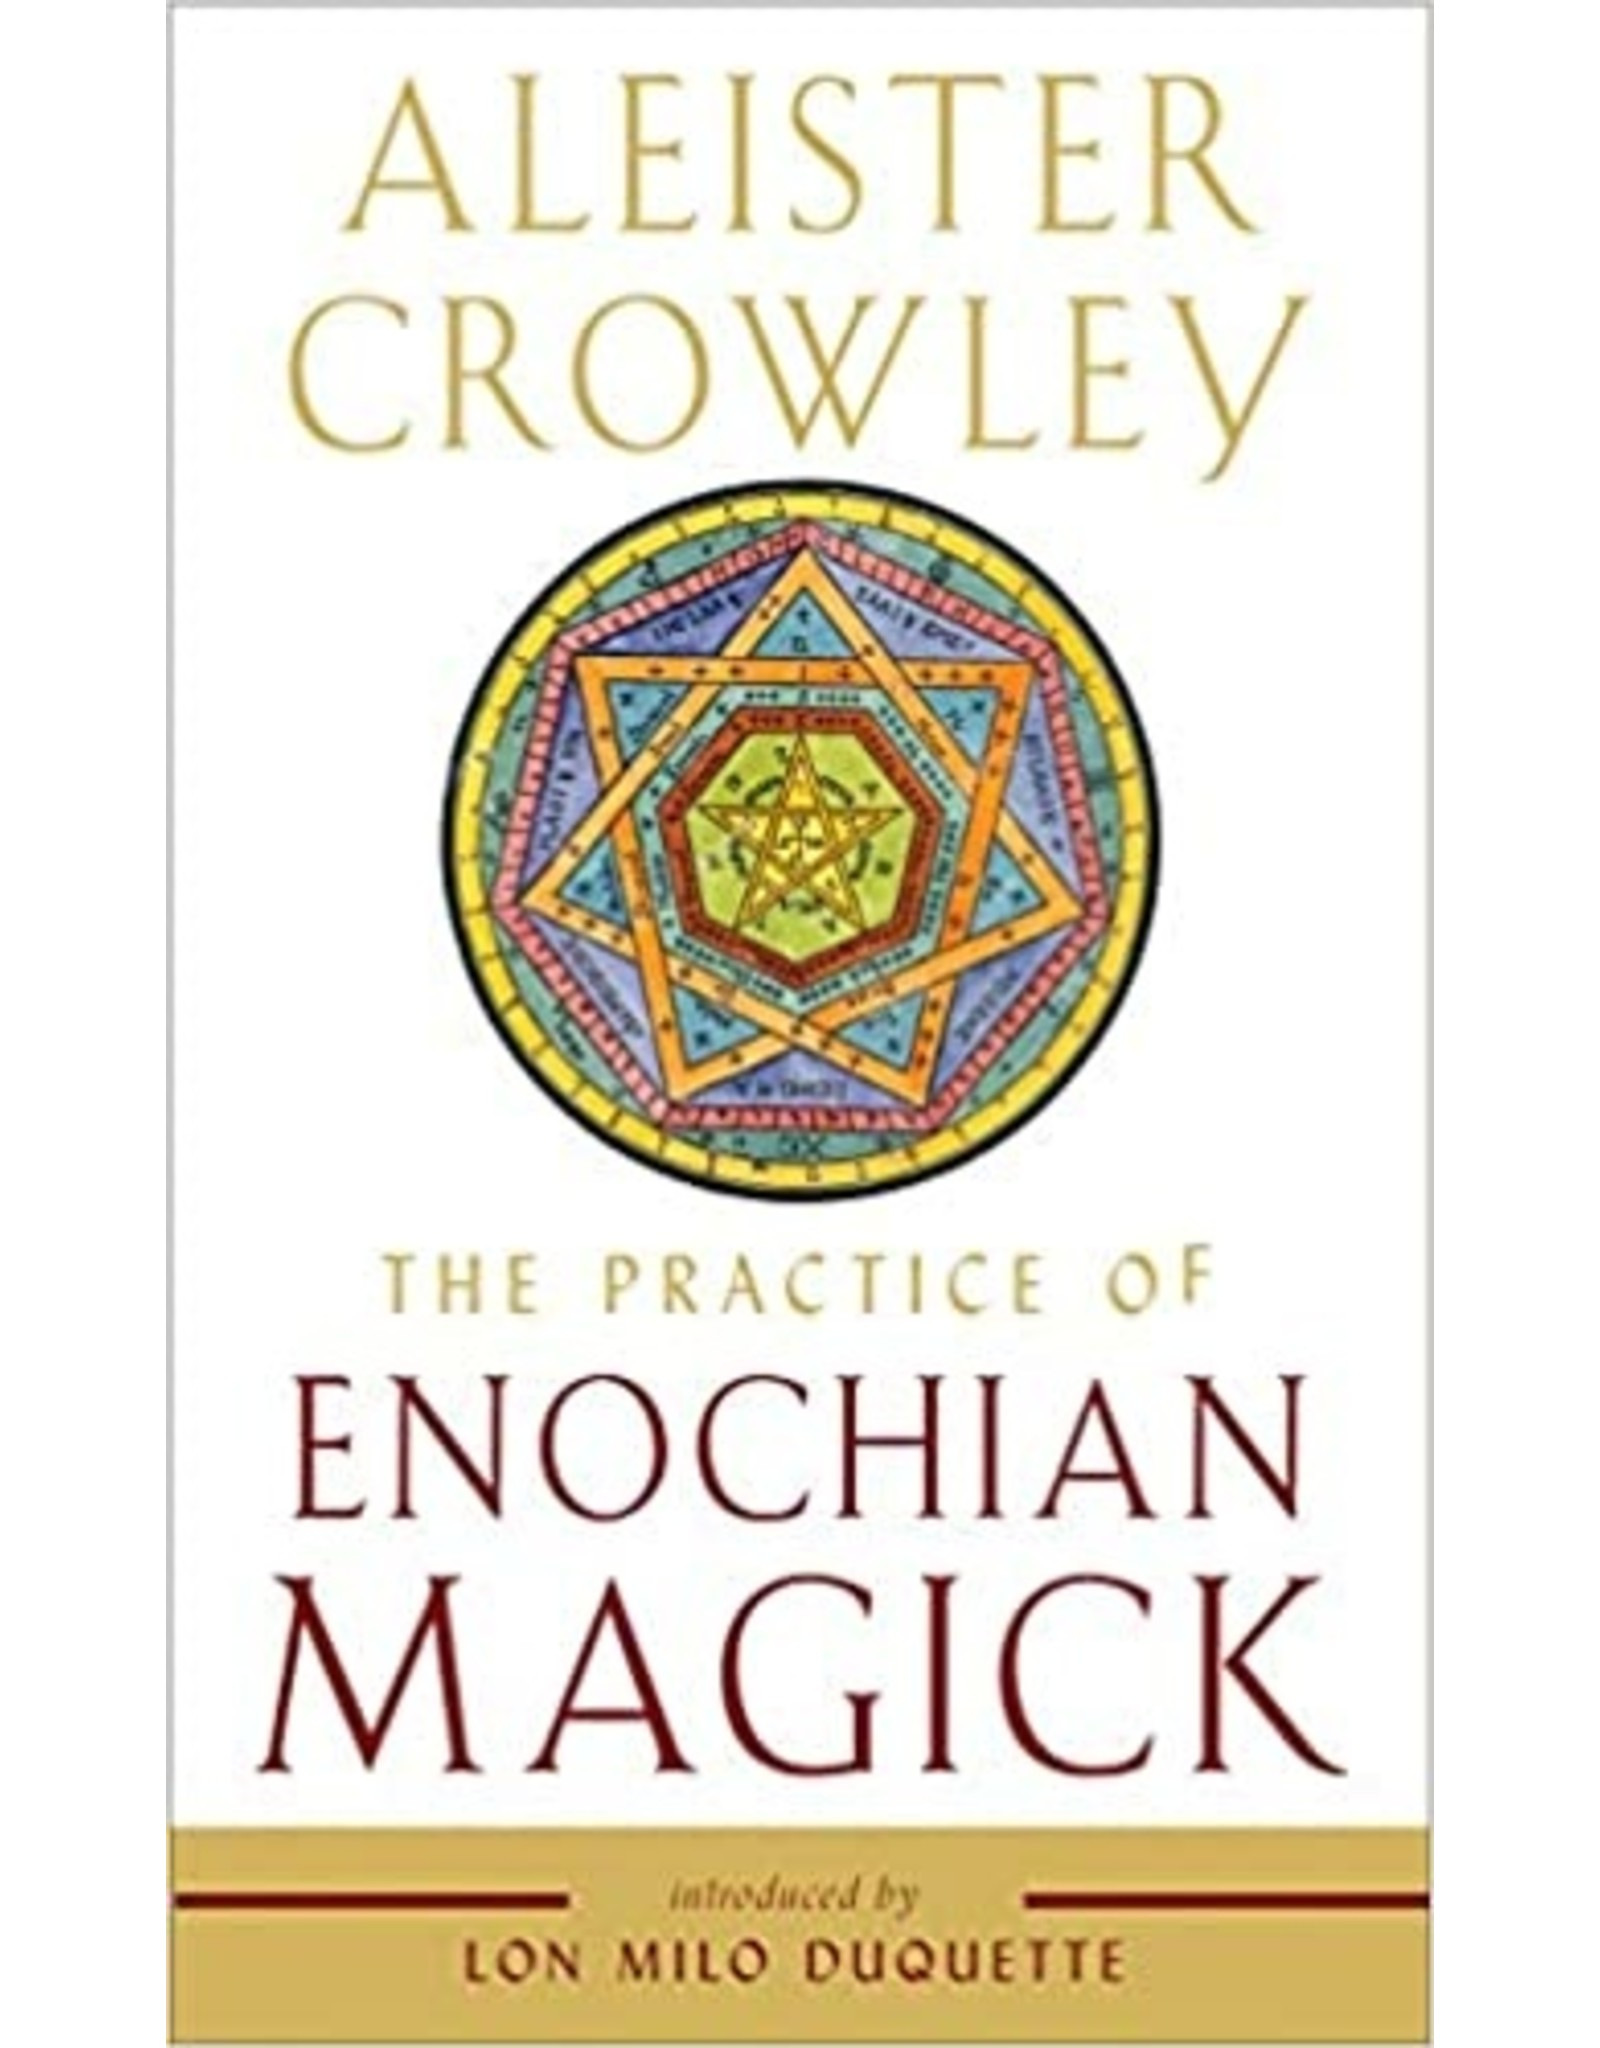 Aleister Crowley: The Practice of Enochian Magick